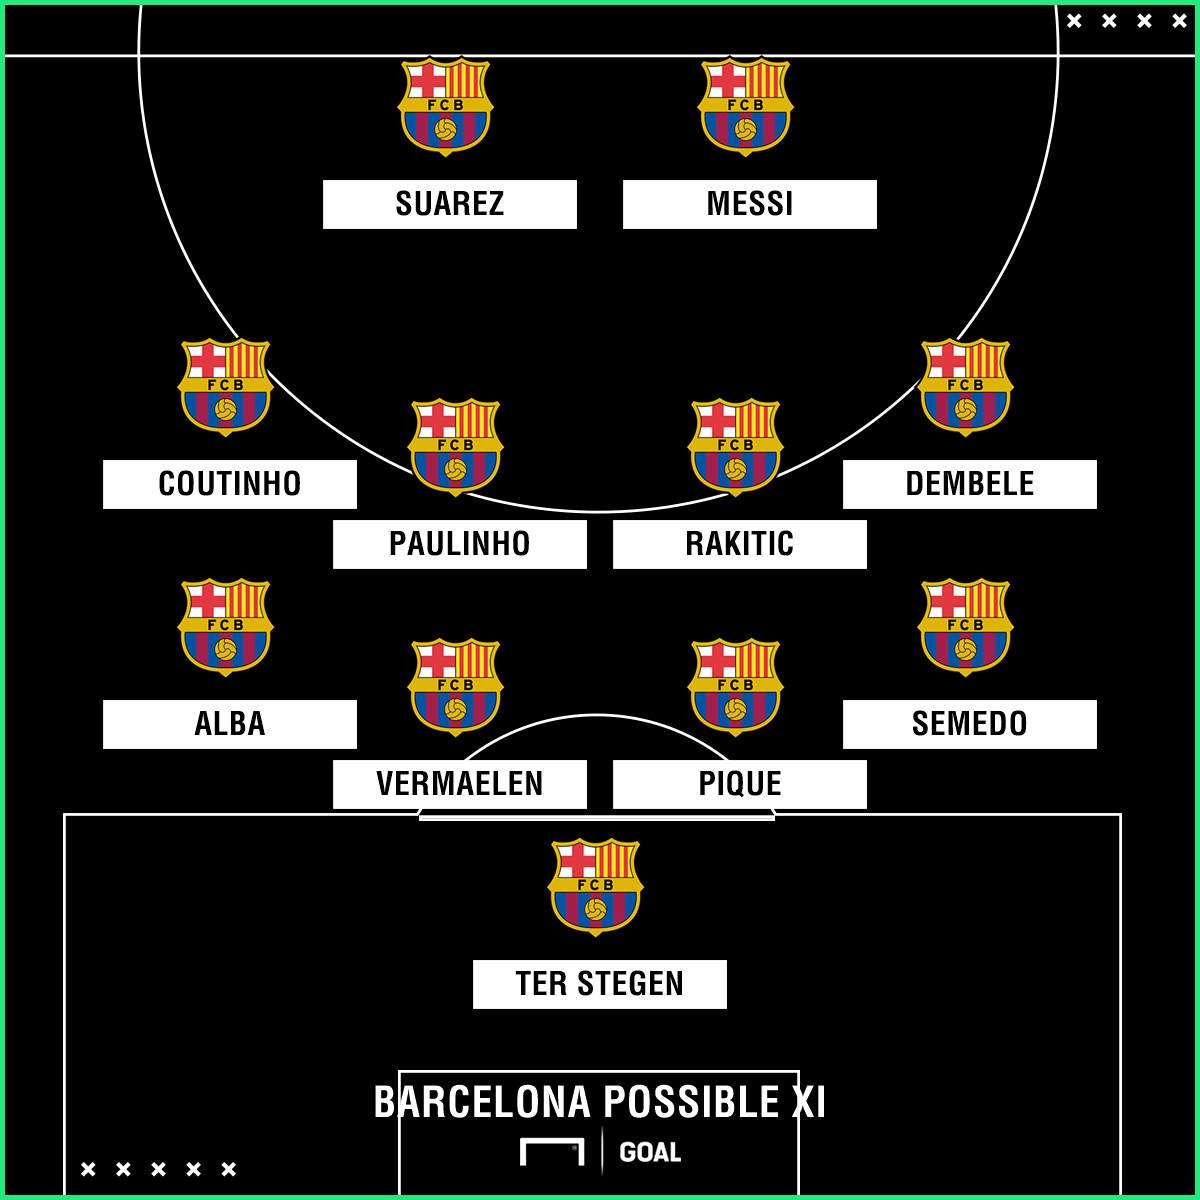 Barca possible Leganes